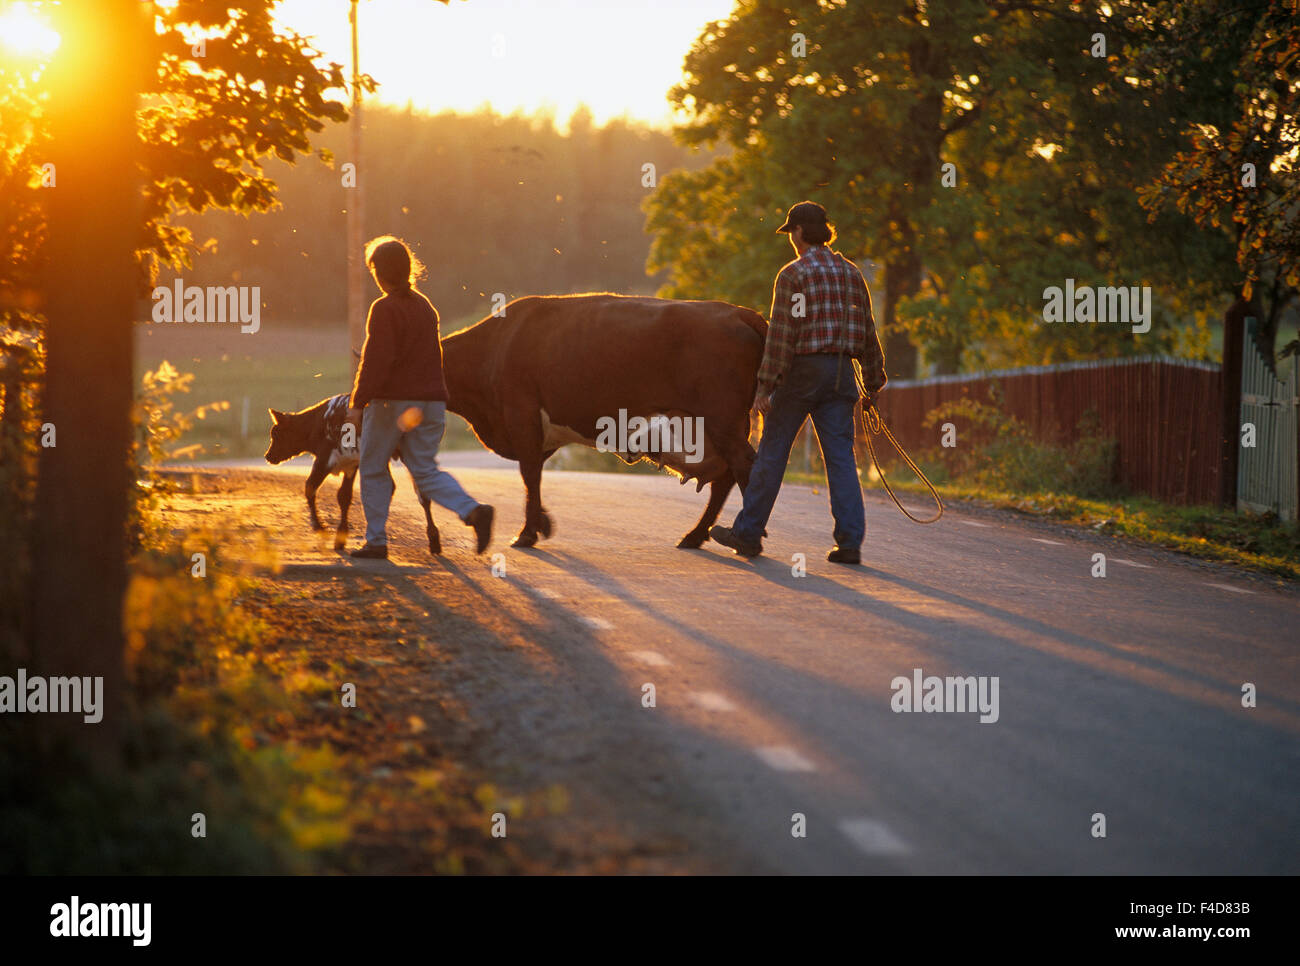 Man and woman with cows on road - Stock Image